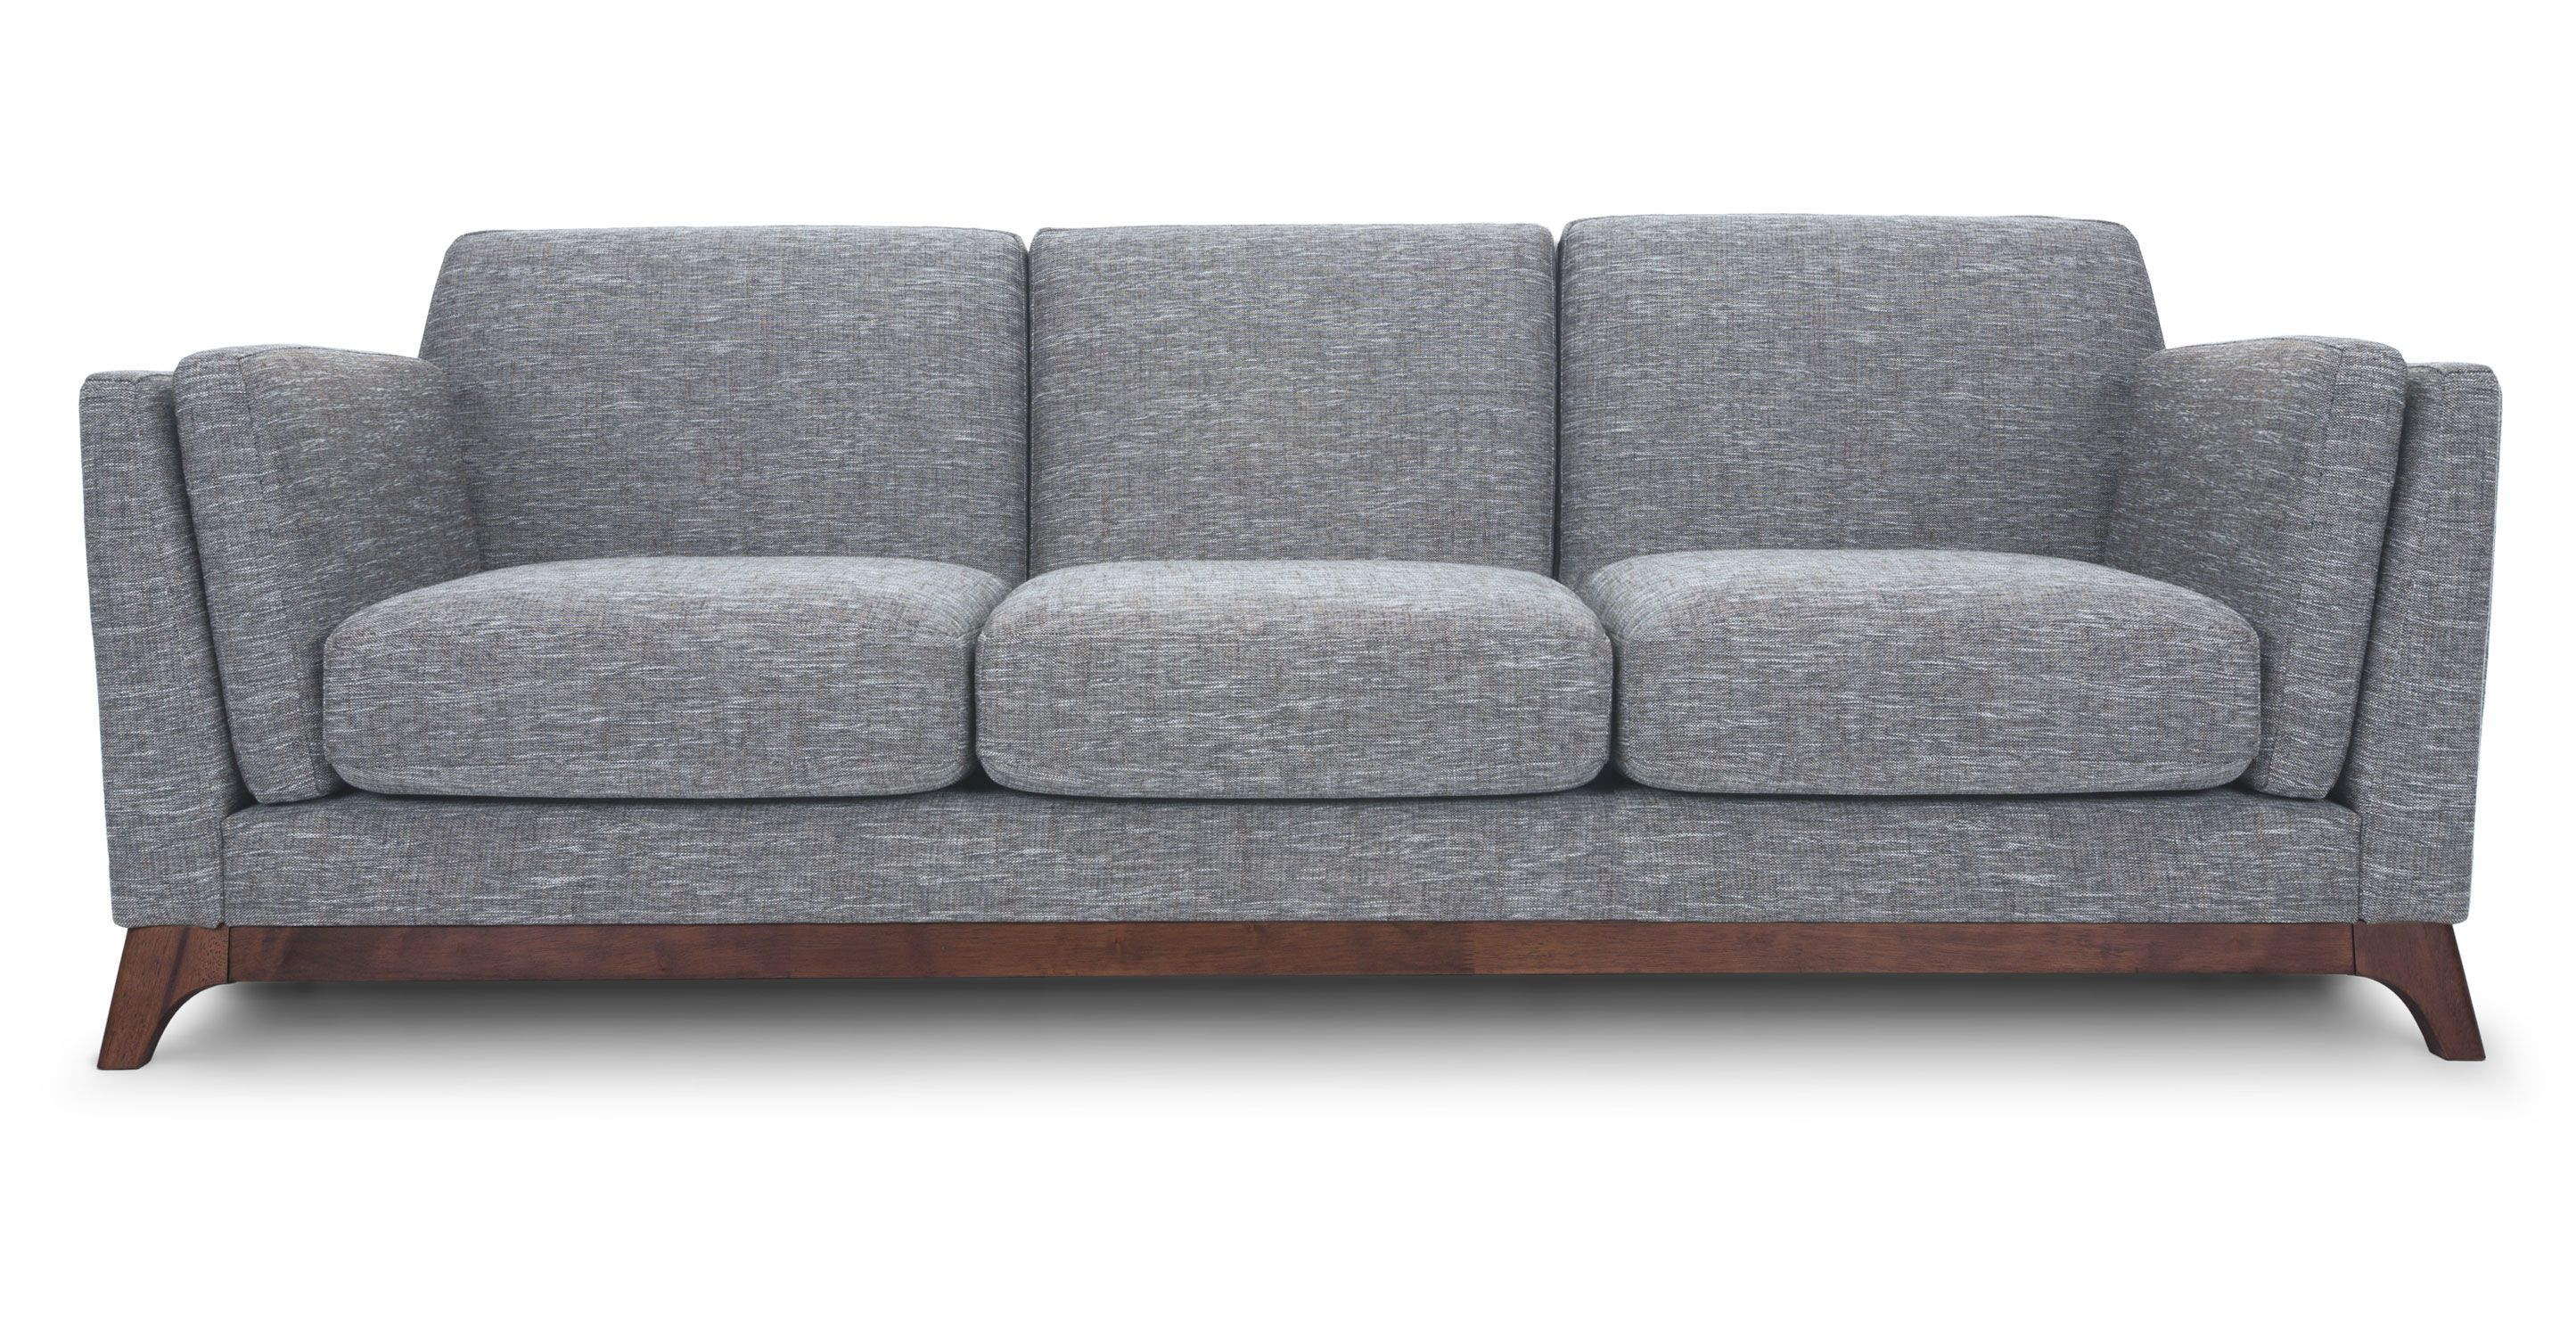 Moderne Sofa Gray Sofa 3 Seater With Solid Wood Legs Article Ceni